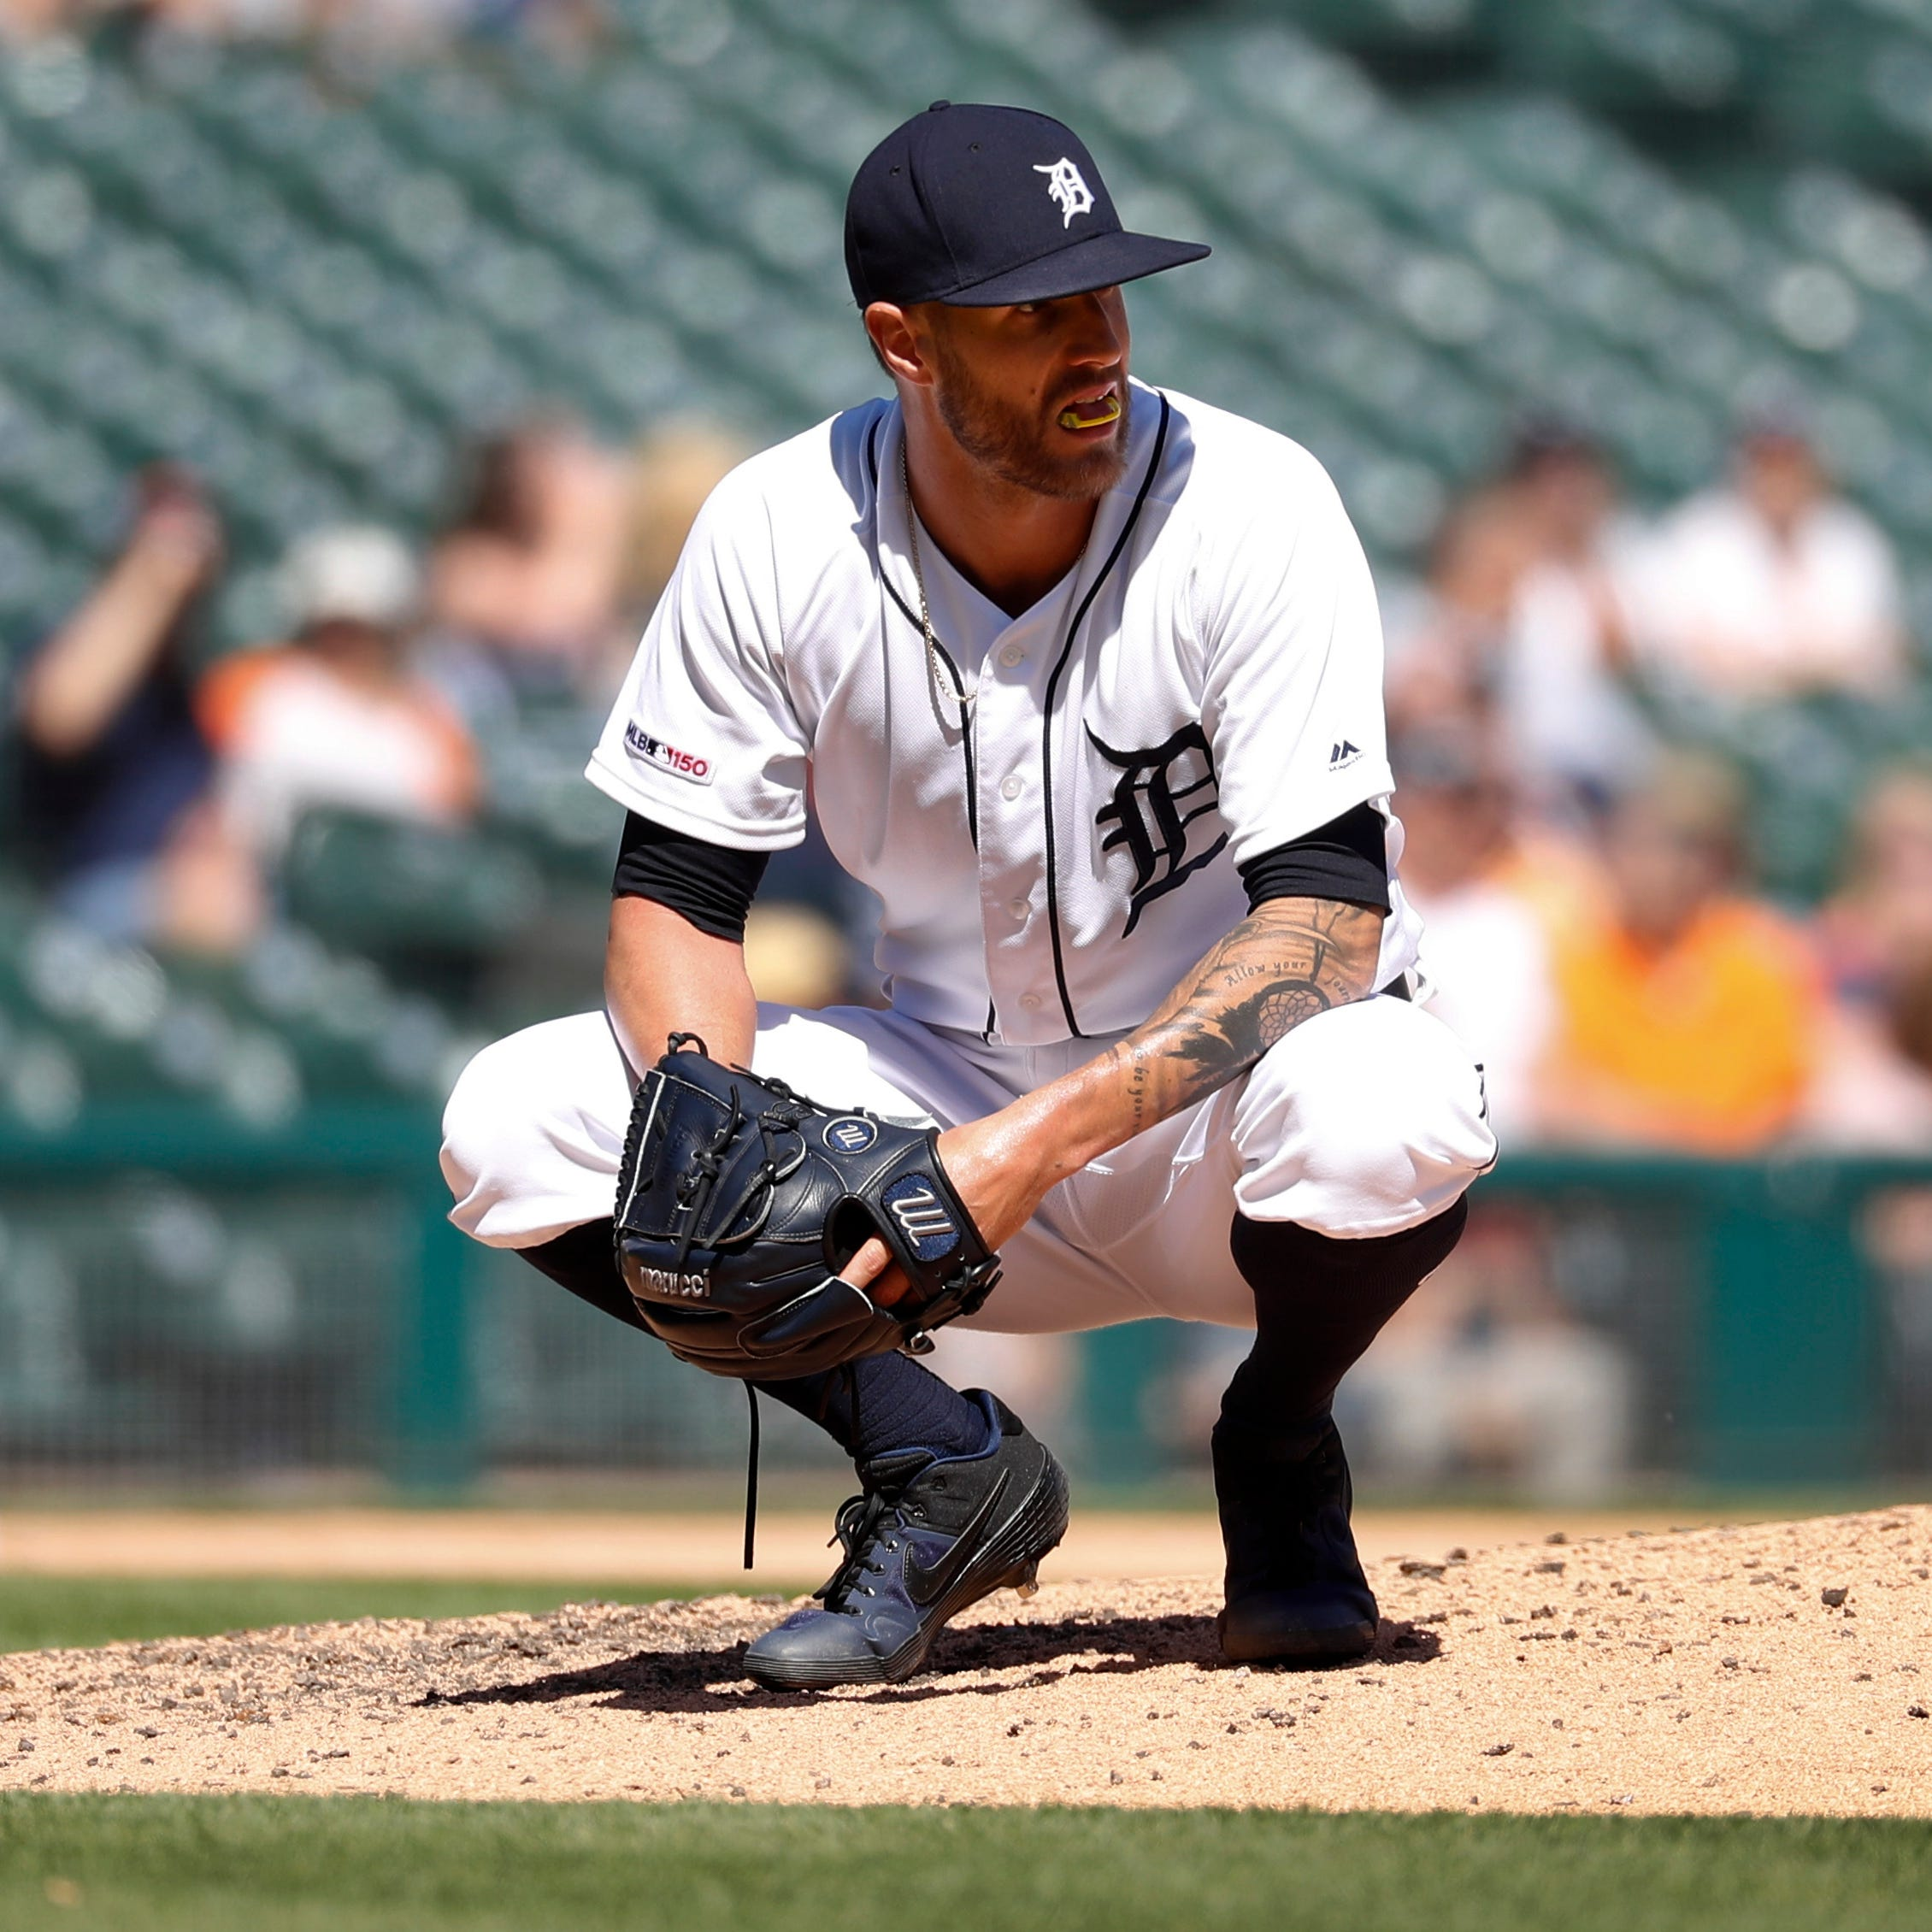 Detroit Tigers hit rock bottom vs. Marlins, with no end in sight